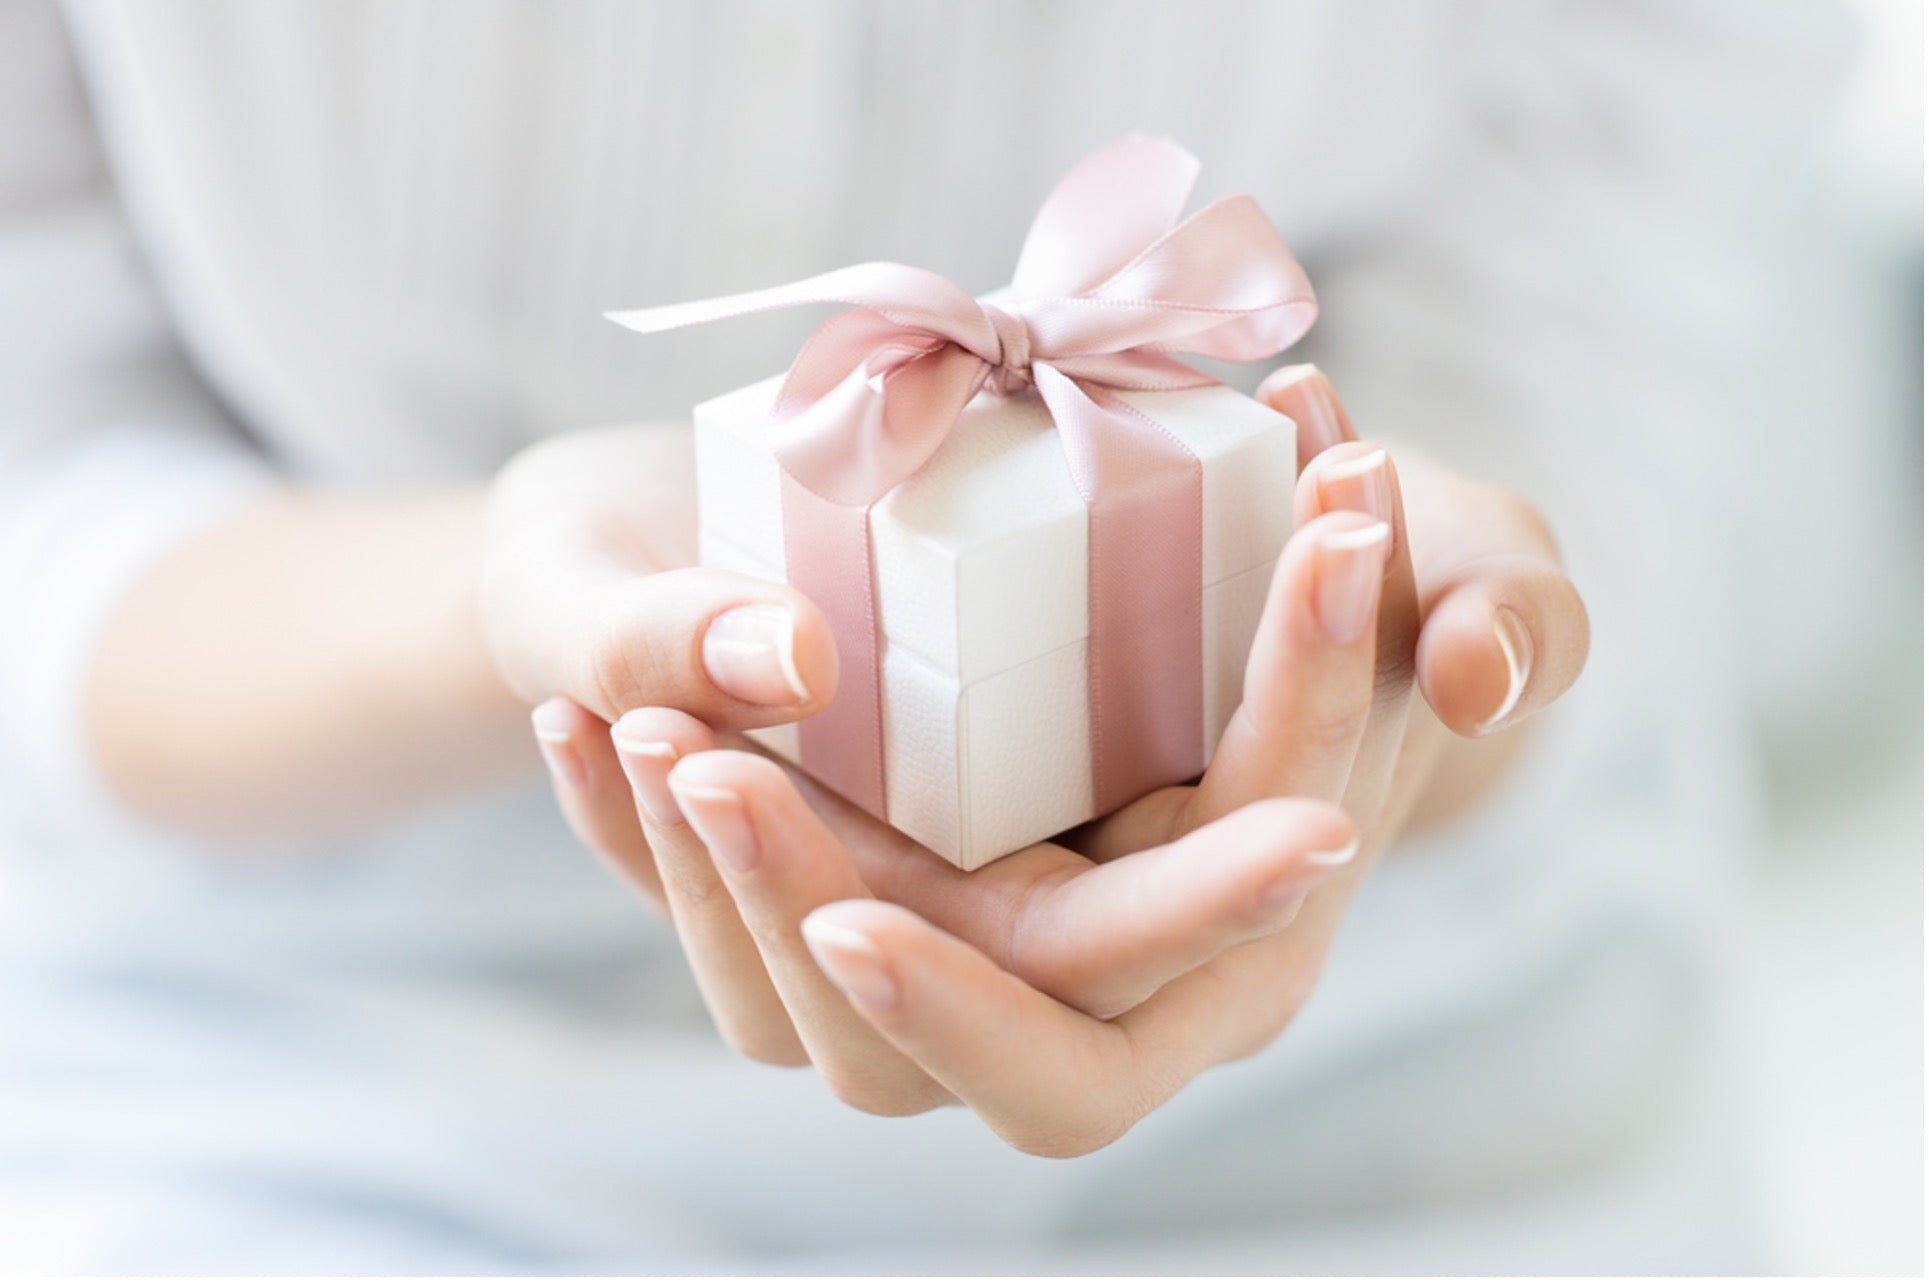 Celebrate this Special Day with Gifts